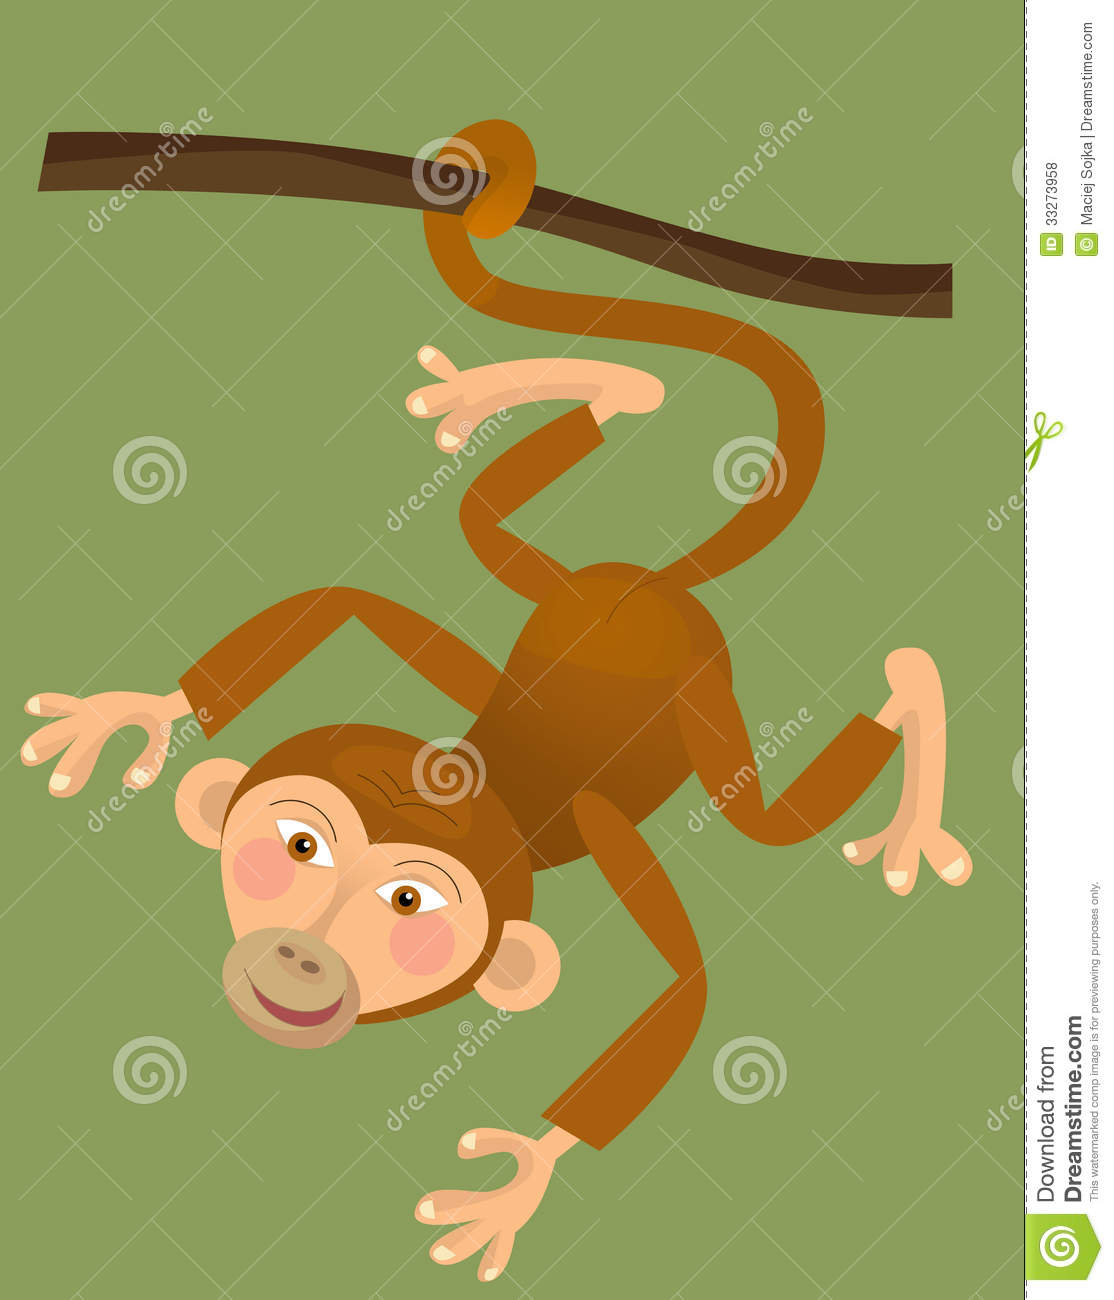 cartoon ape monkey illustration for the children royalty free